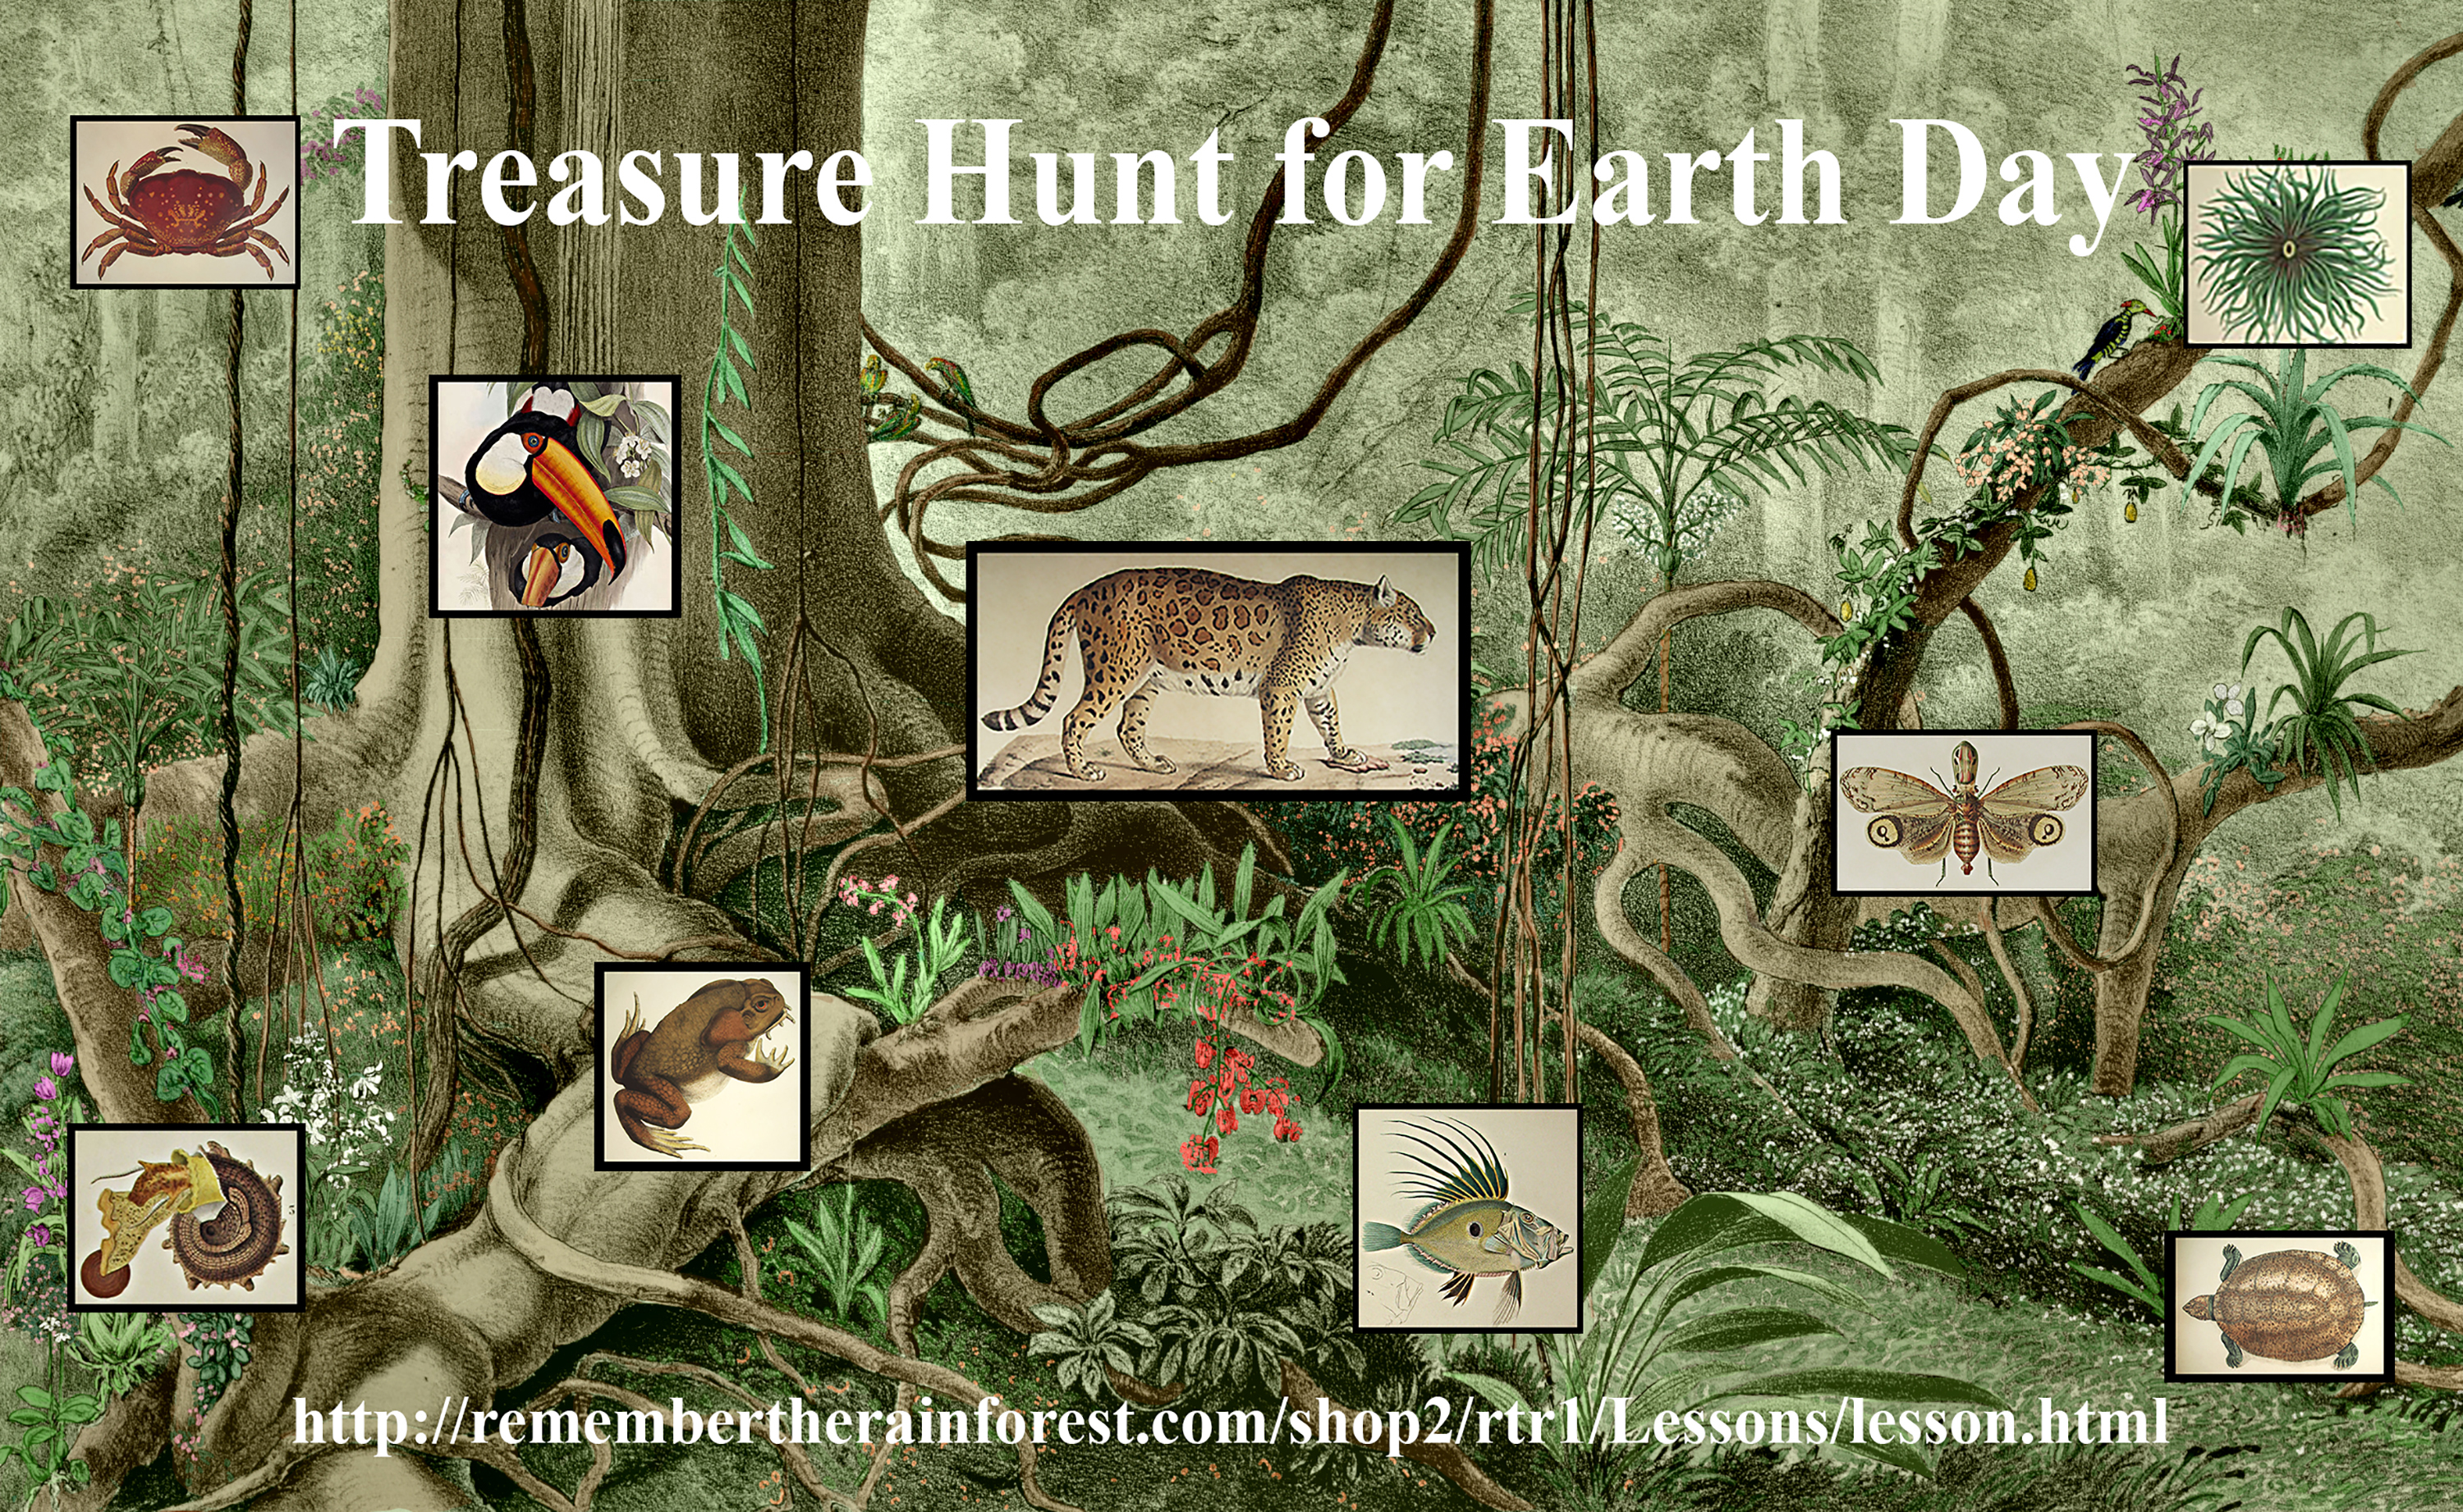 Remember the Rainforest : Treasure Hunt